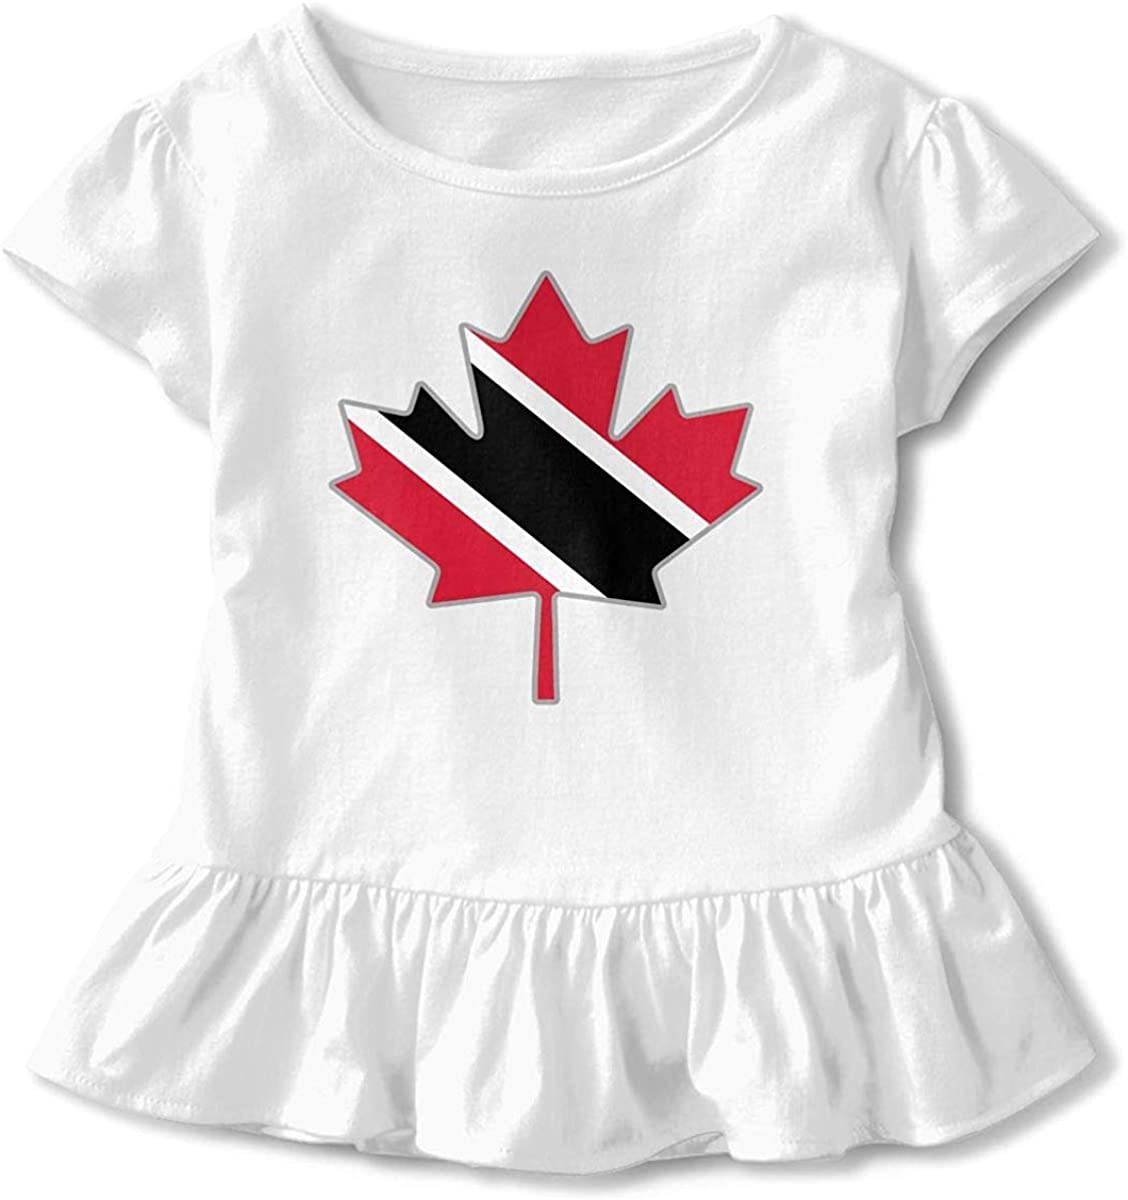 Toddler Baby Girl Trinidad Flag Canada Maple Leaf-1 Funny Short Sleeve Cotton T Shirts Basic Tops Tee Clothes